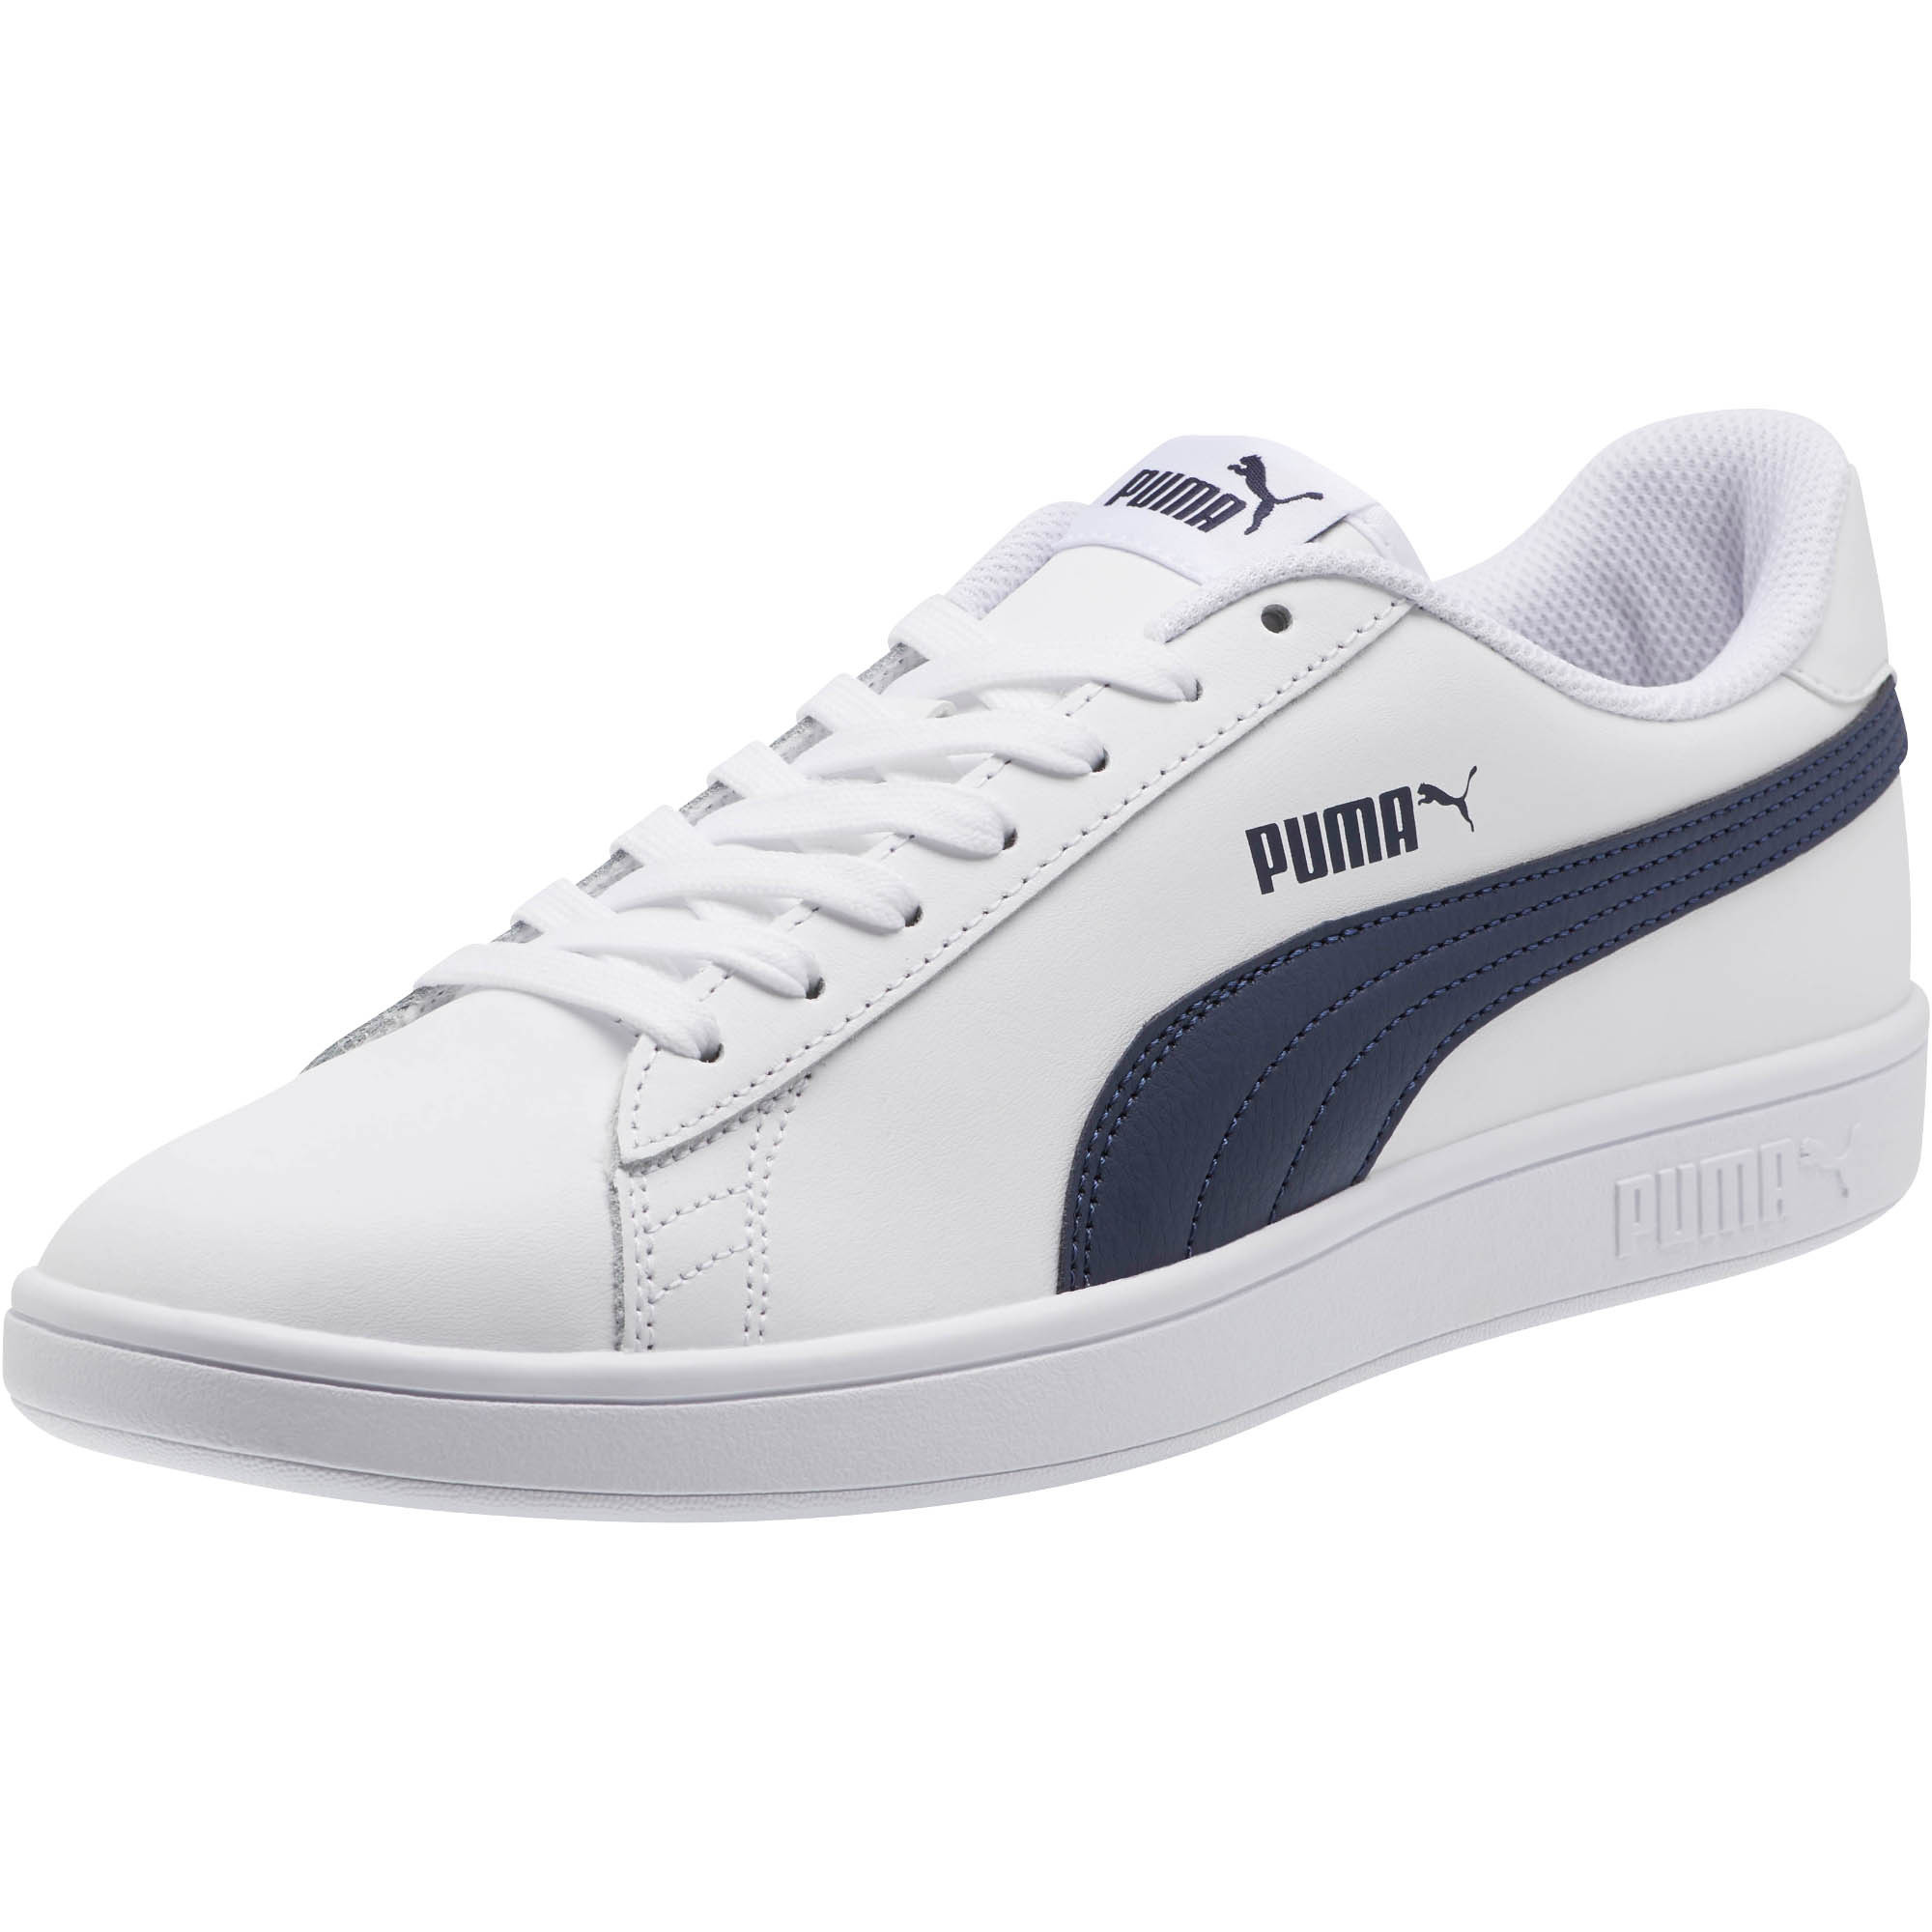 PUMA-PUMA-Smash-v2-Men-039-s-Sneakers-Men-Shoe-Basics miniatura 14